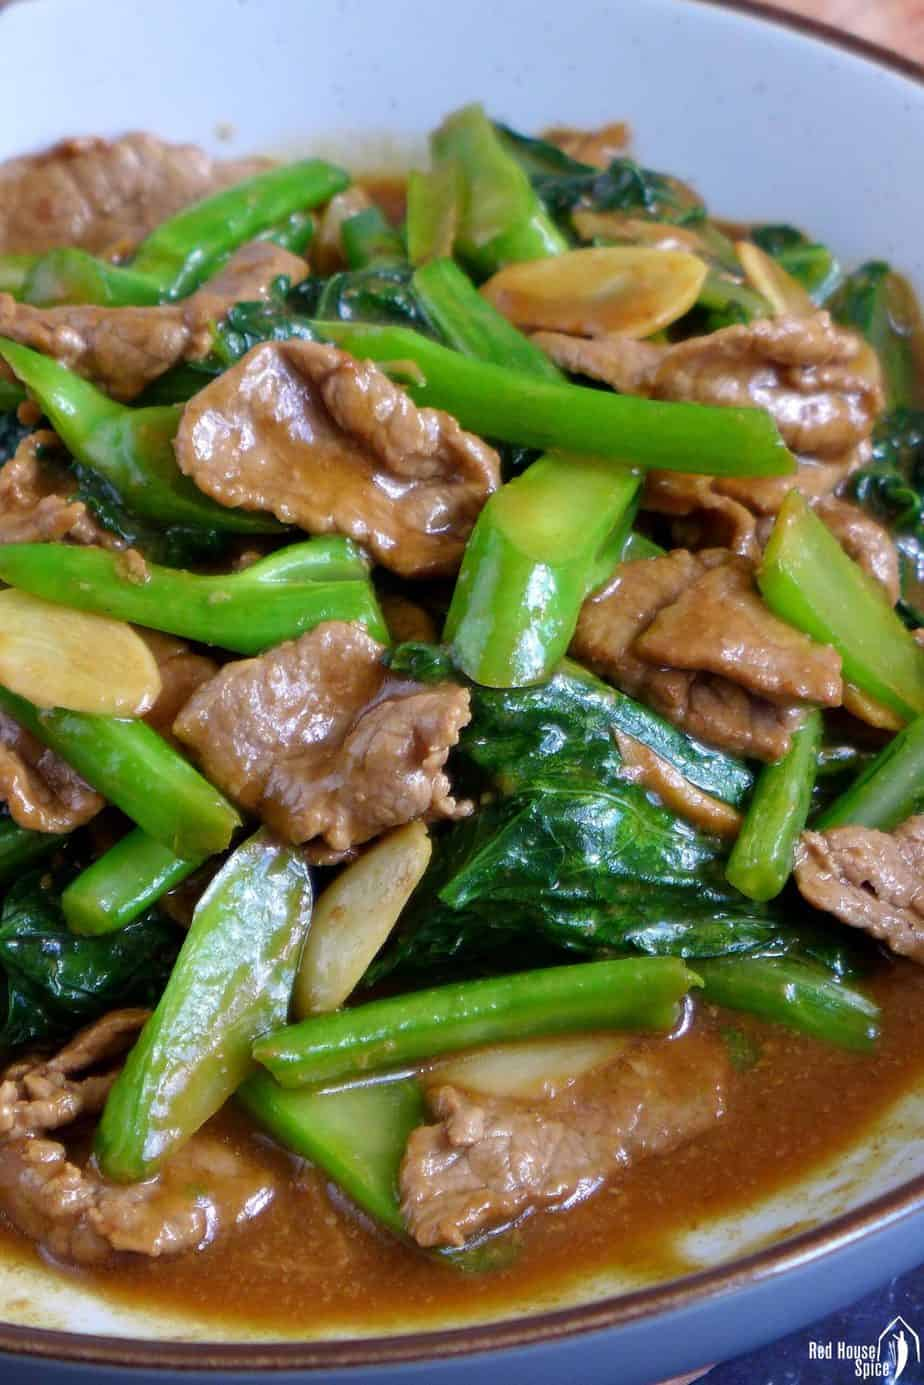 Beef & Chinese broccoli in oyster sauce